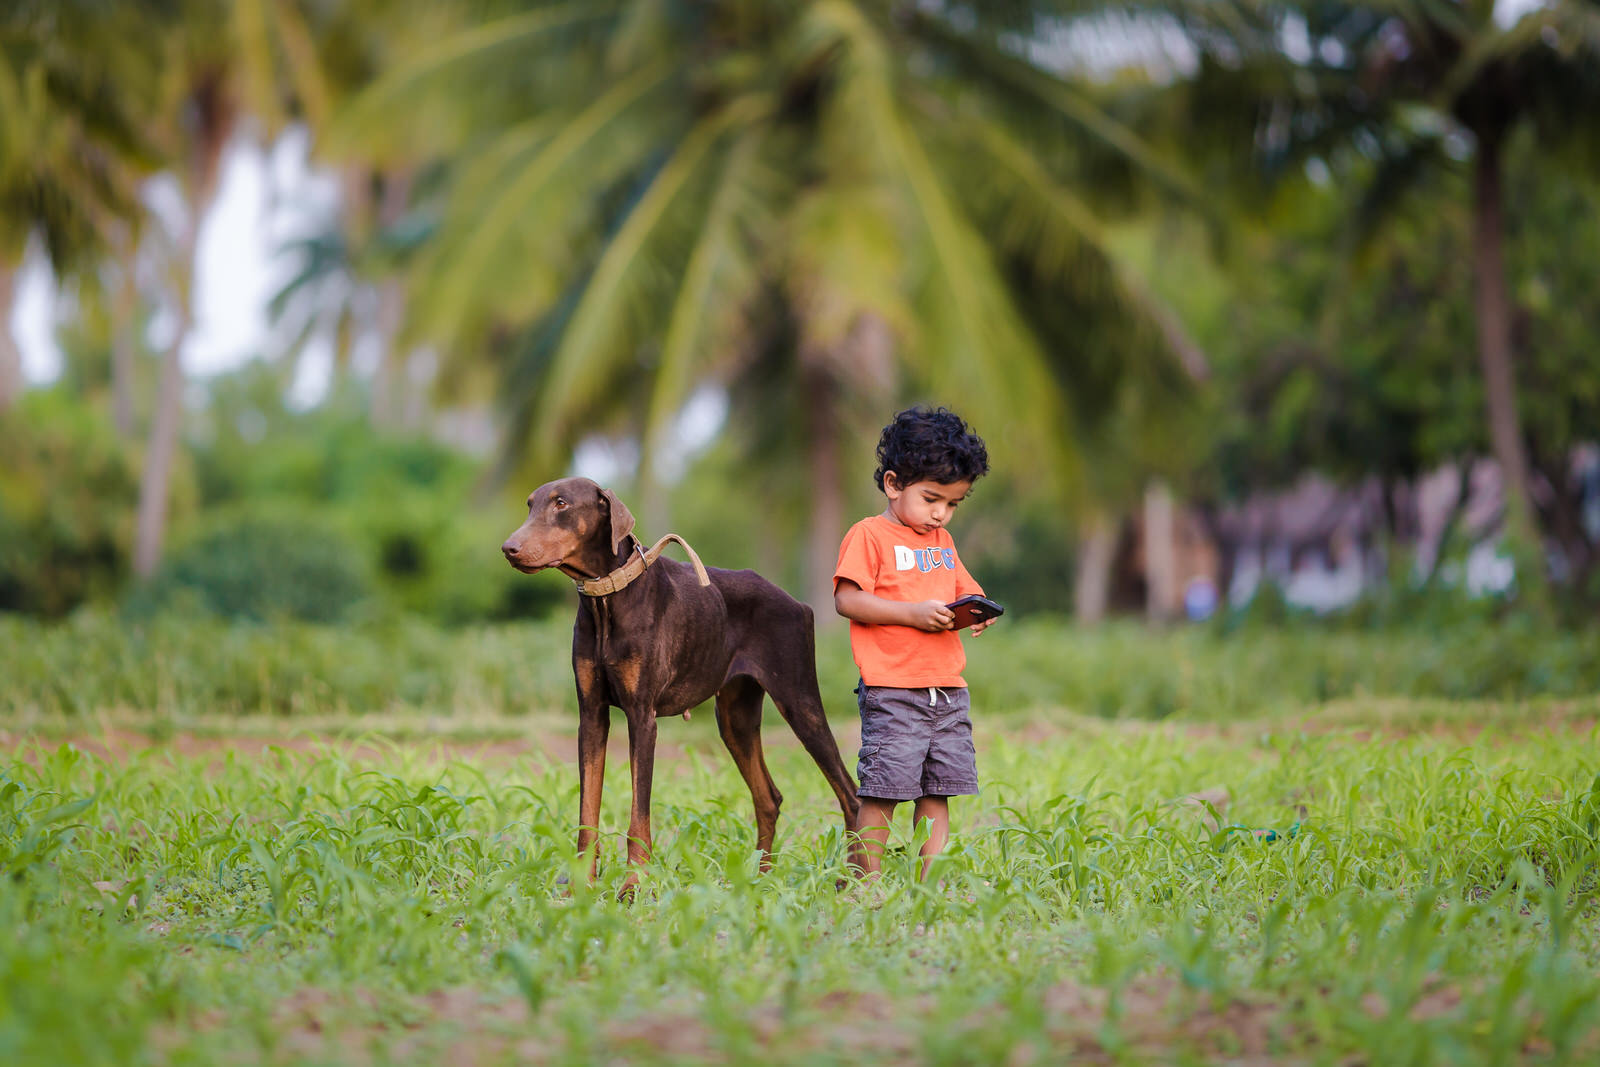 20150328-Sahas-With-Dog-in-fileds-125.jpg